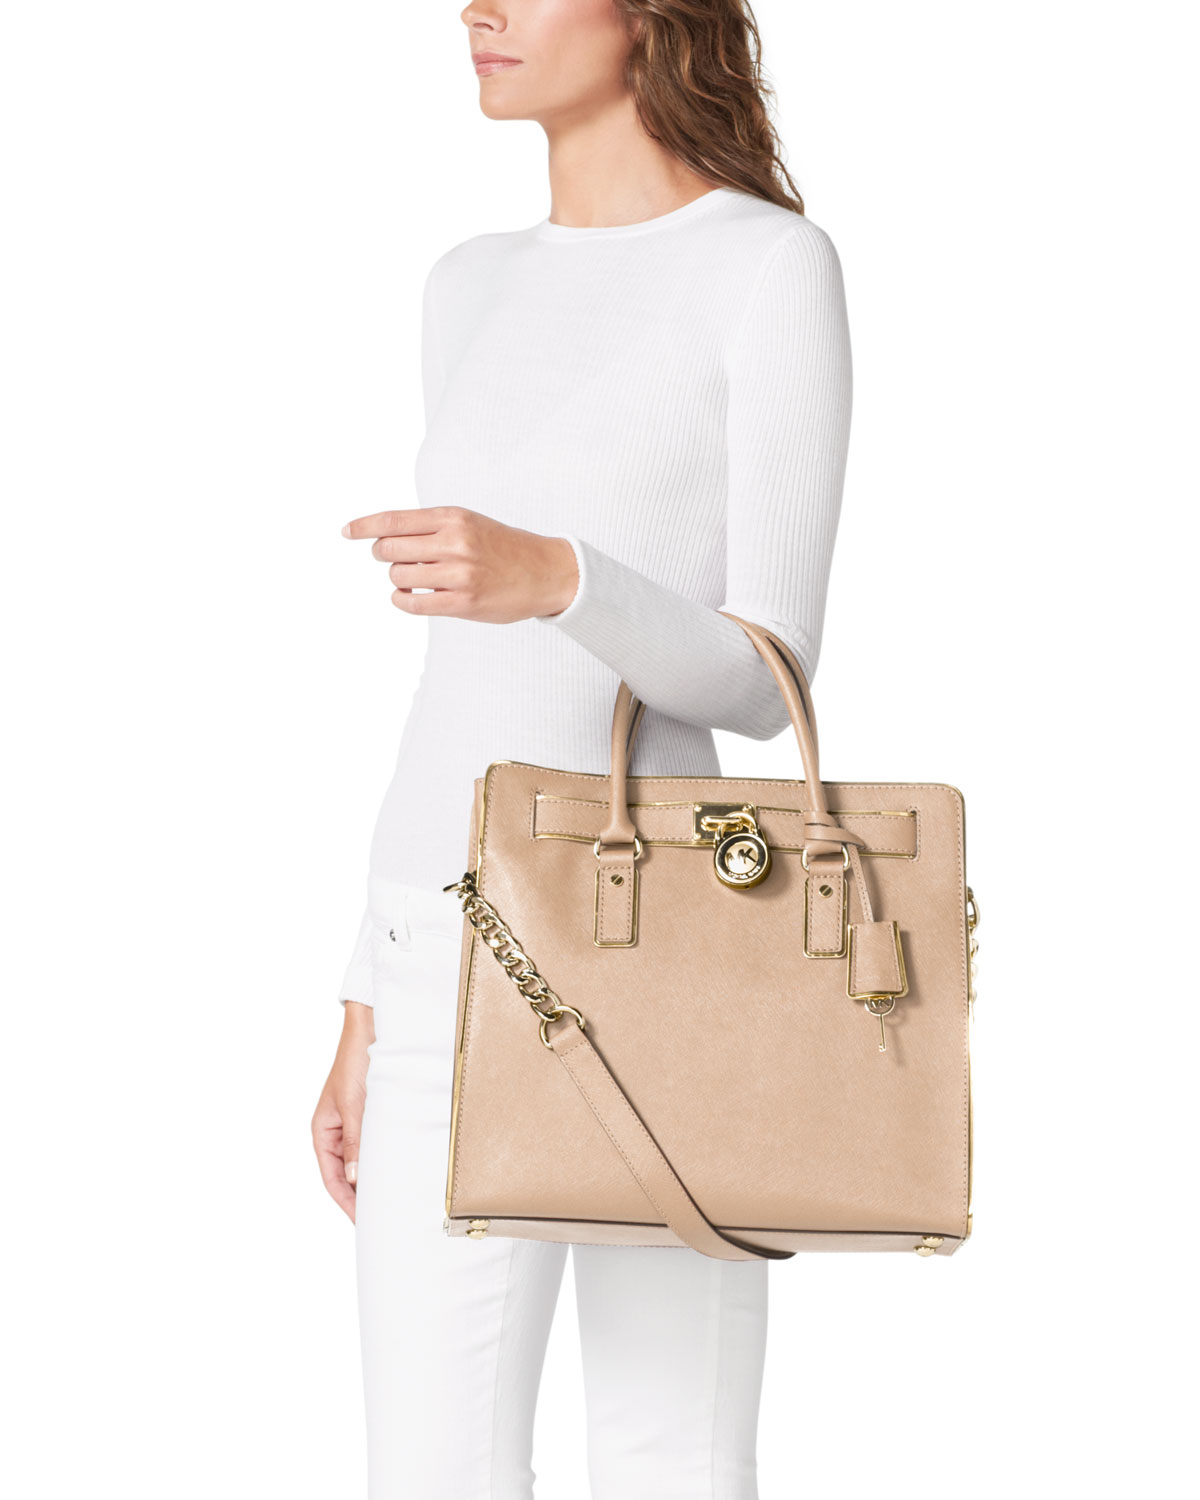 usa lyst michael kors michael large hamilton trimmed tote in natural 7566d  b56b8 7843682278817